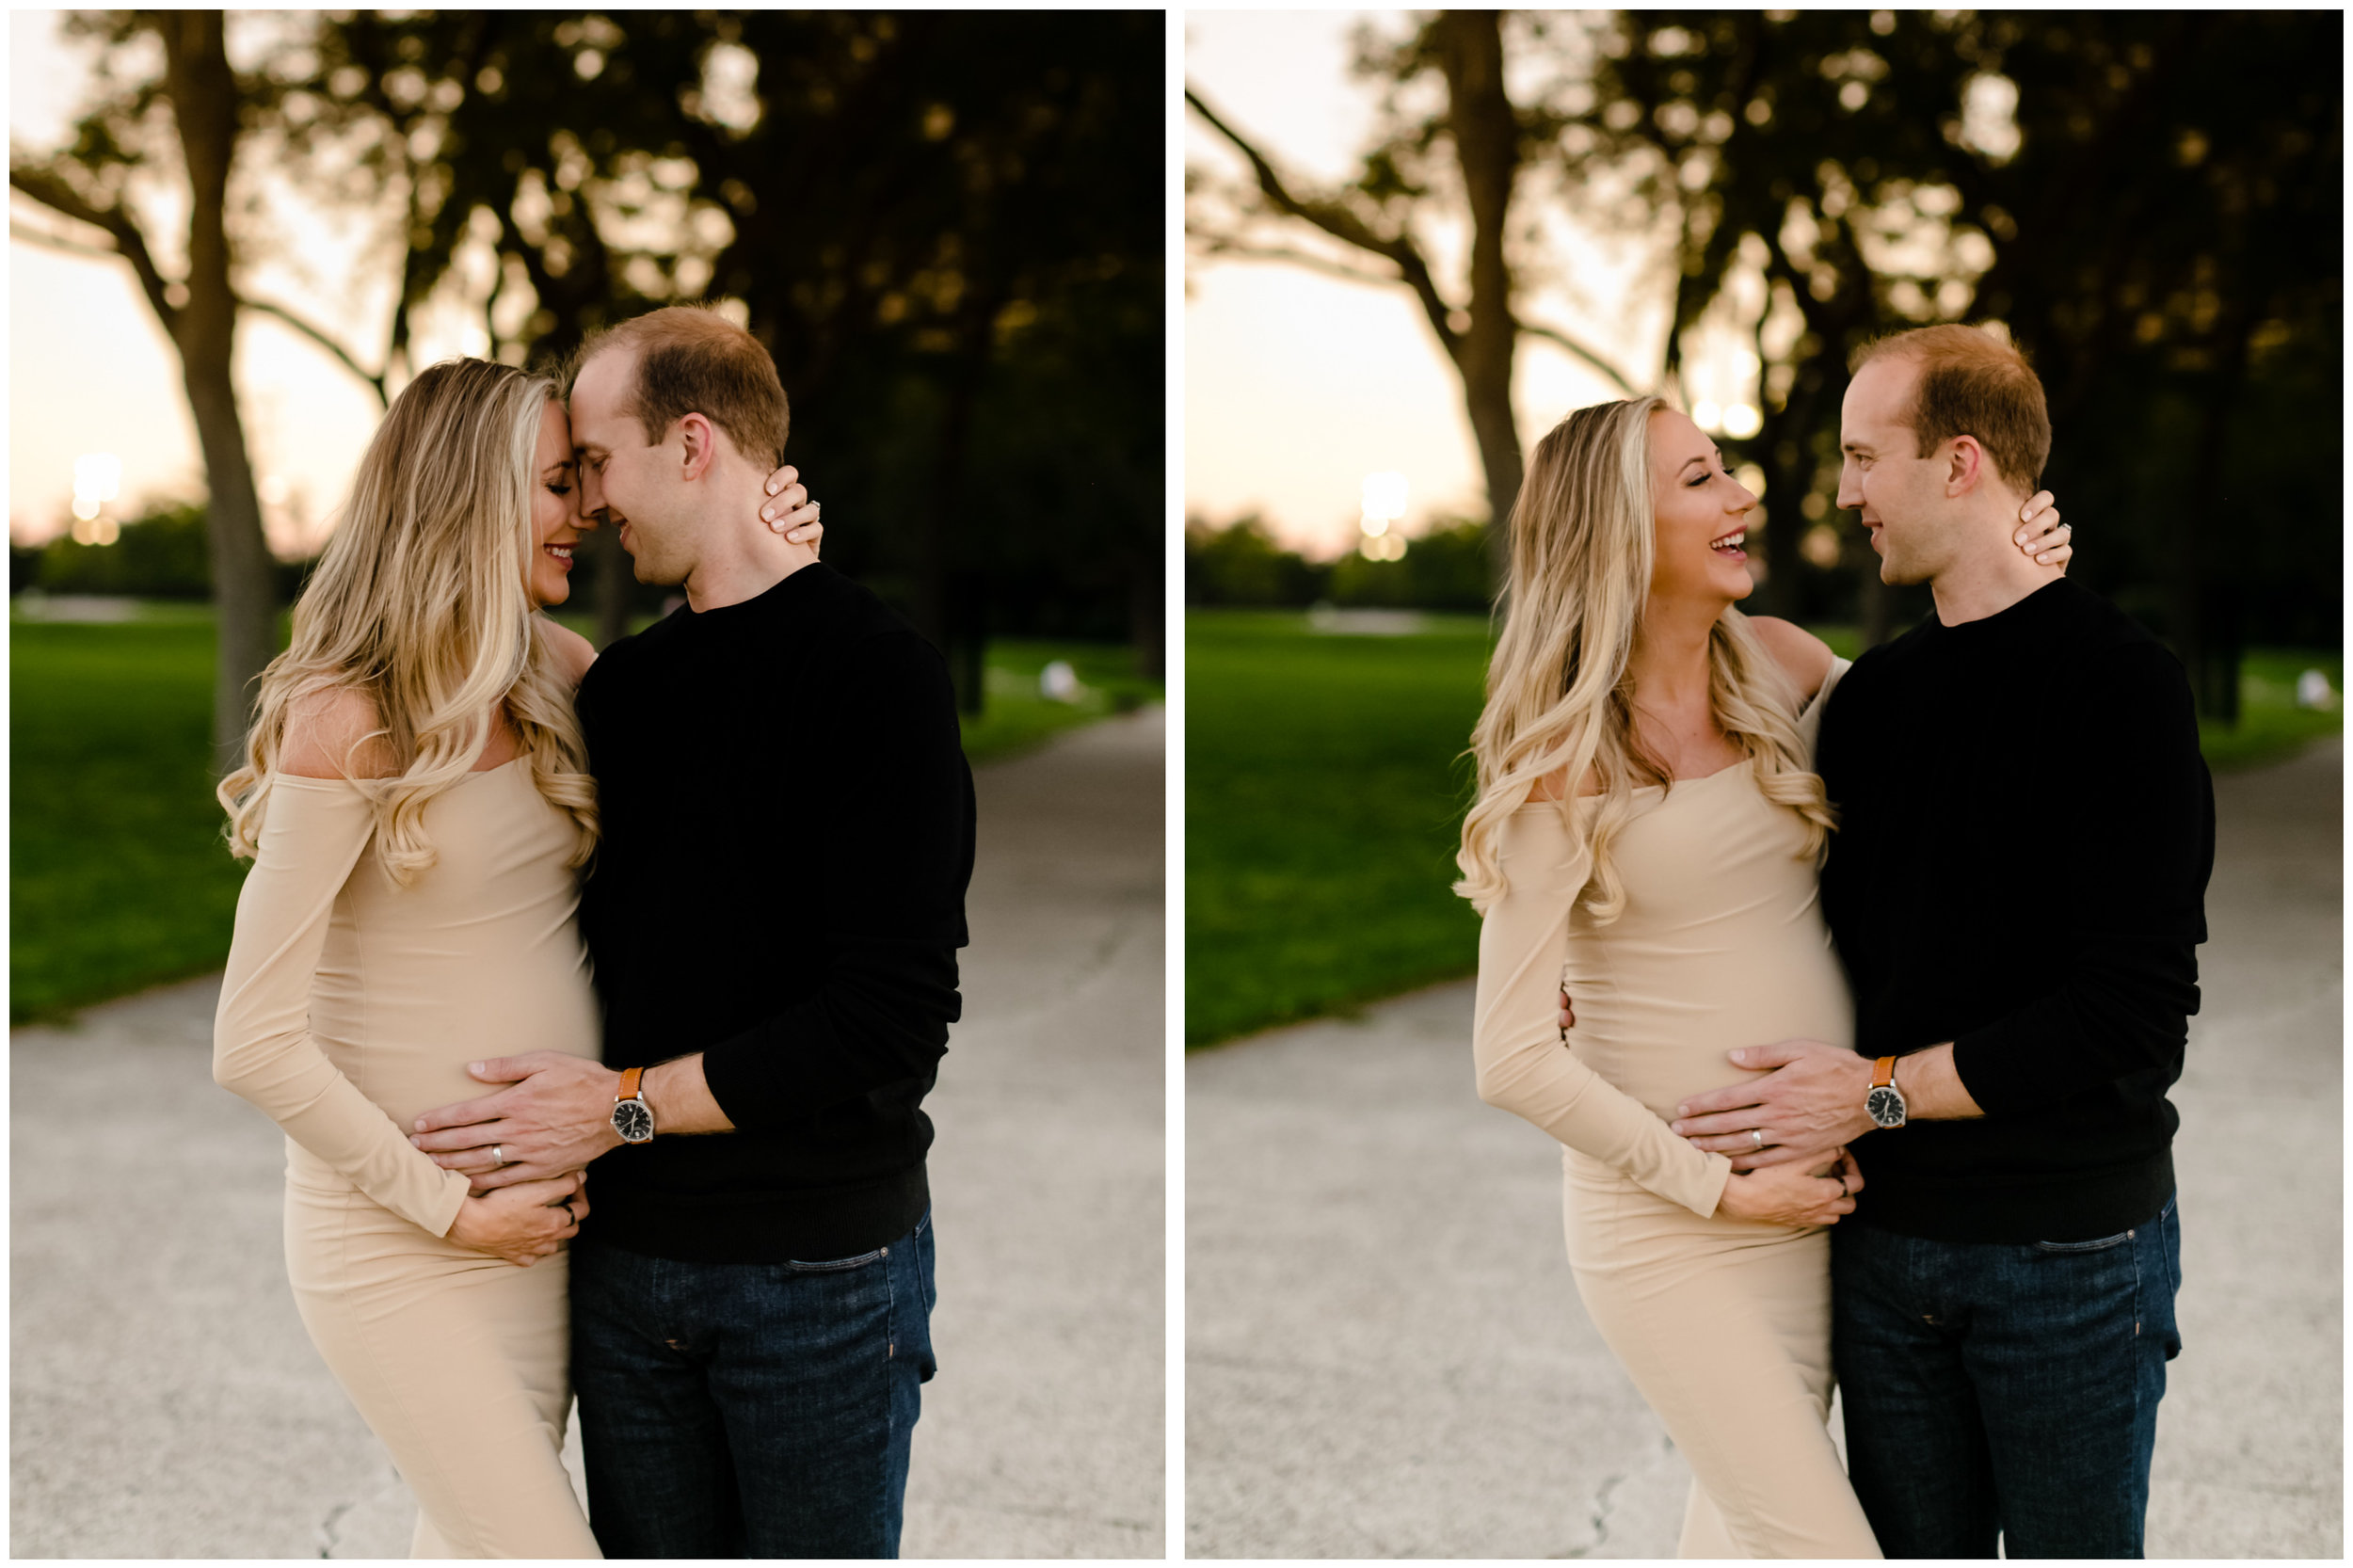 carly cristman maternity lifestyle pregnancy chicago photography shoot jenny grimm 3.jpg